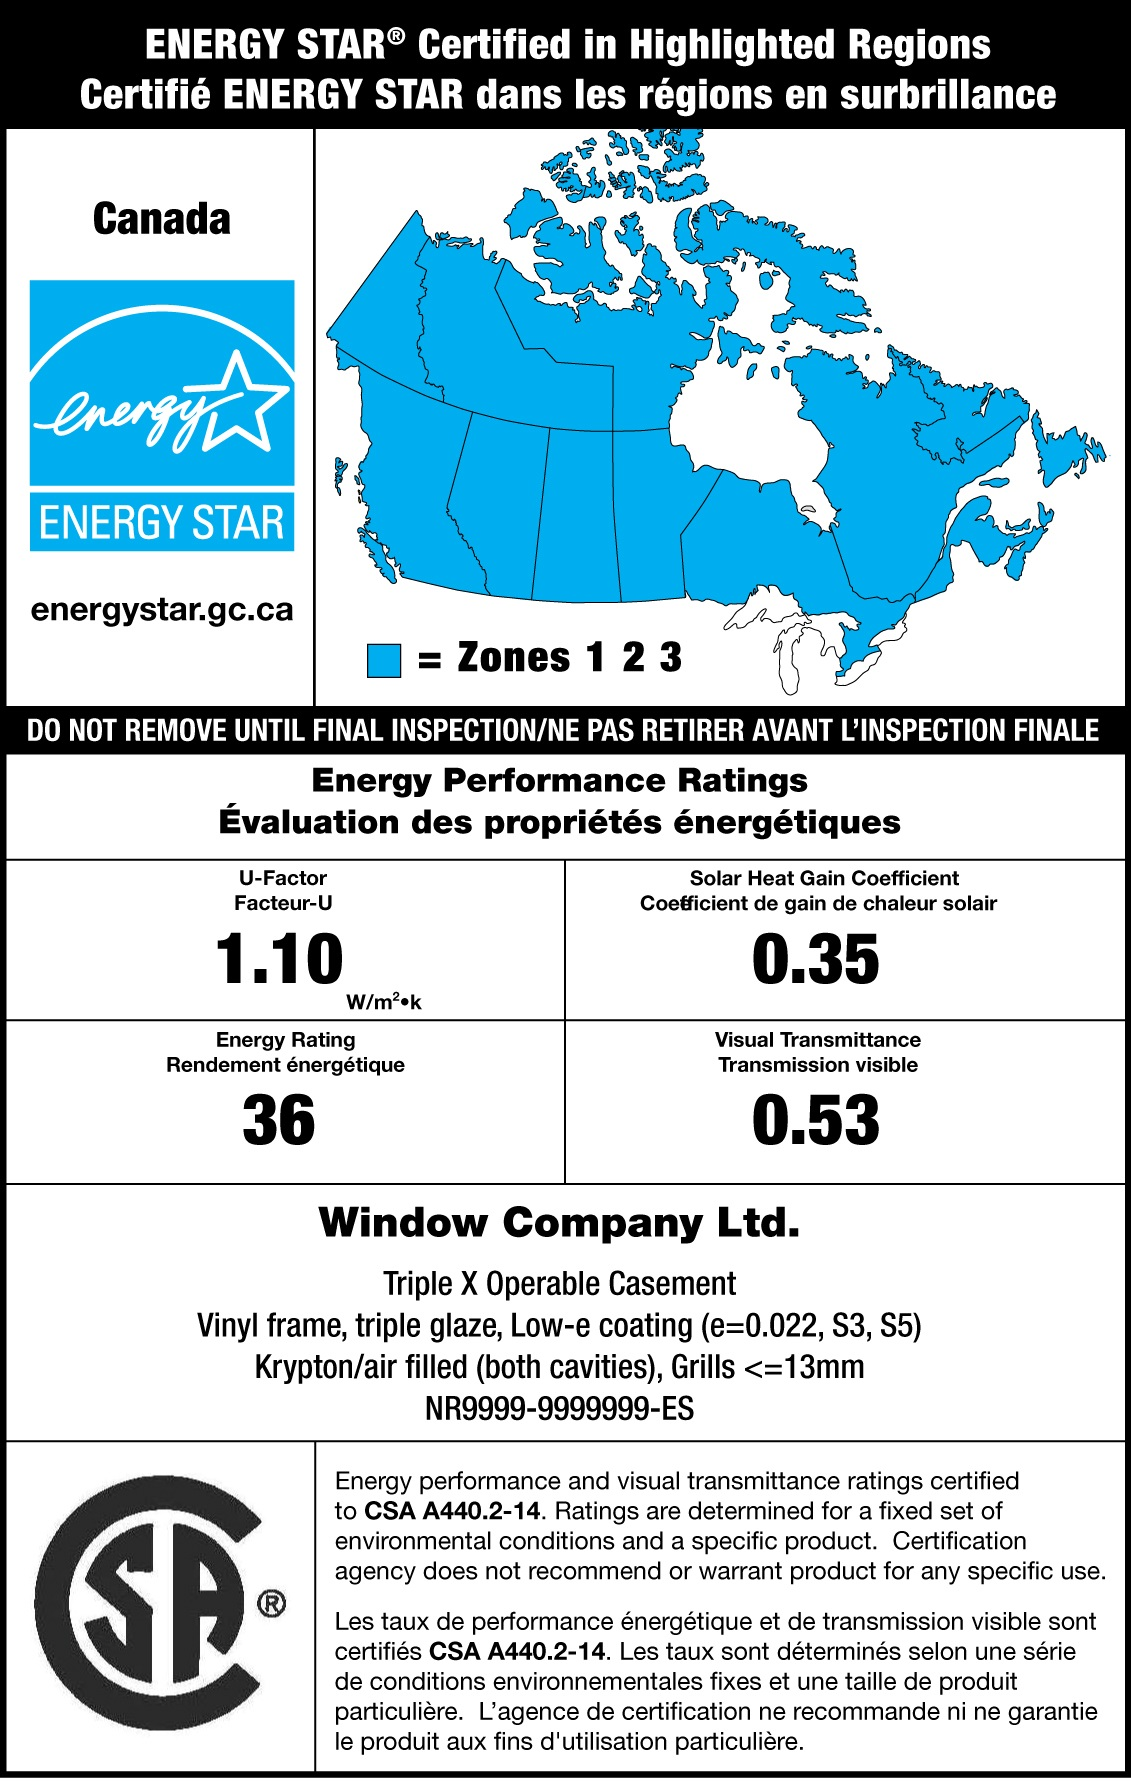 sample energy star label with a map of canada indicating that the product is certified for